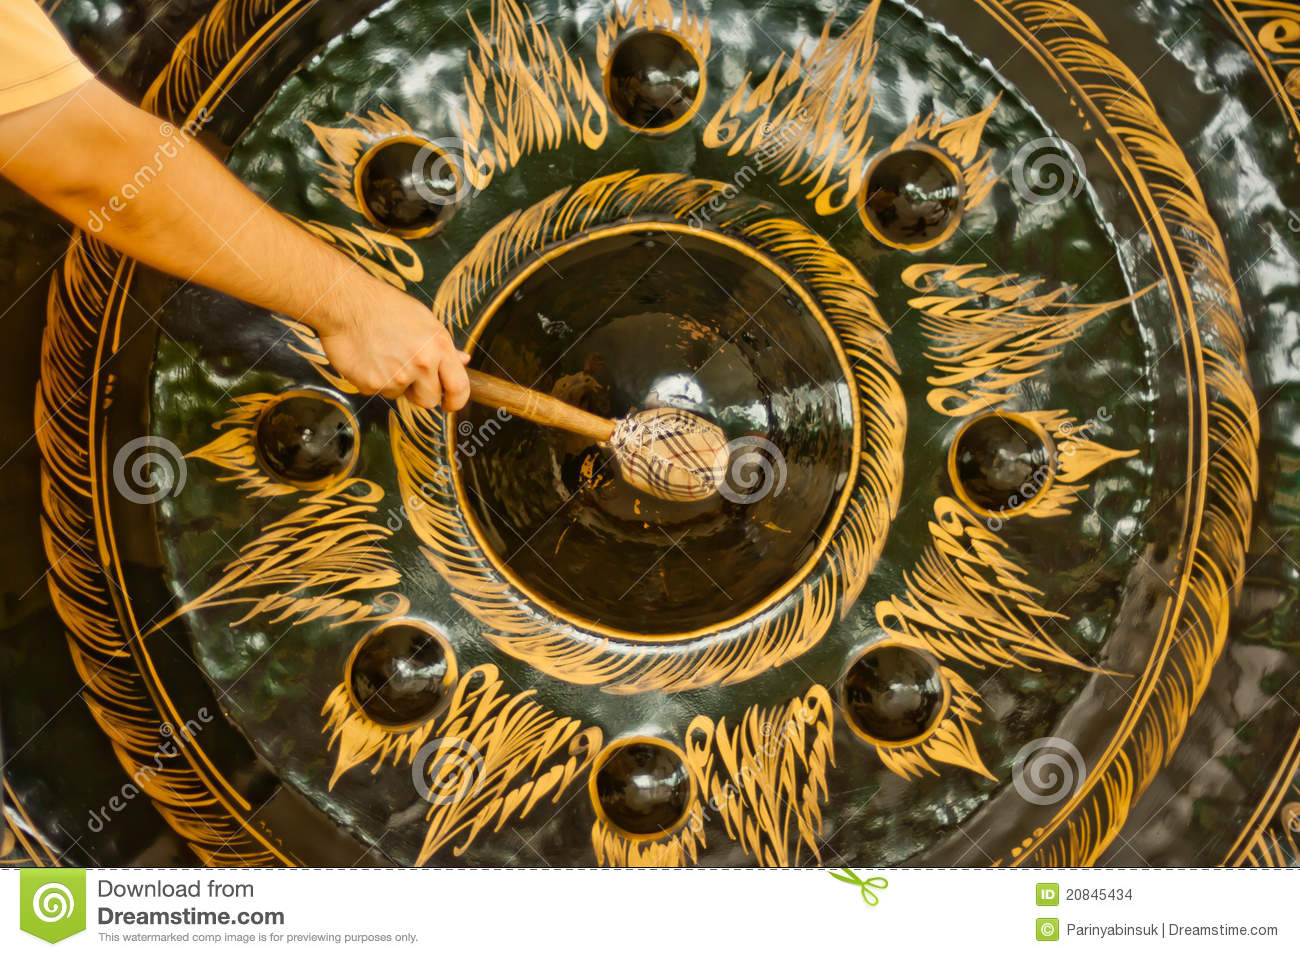 Man Hit Big Gong Stock Images - Image: 20845434